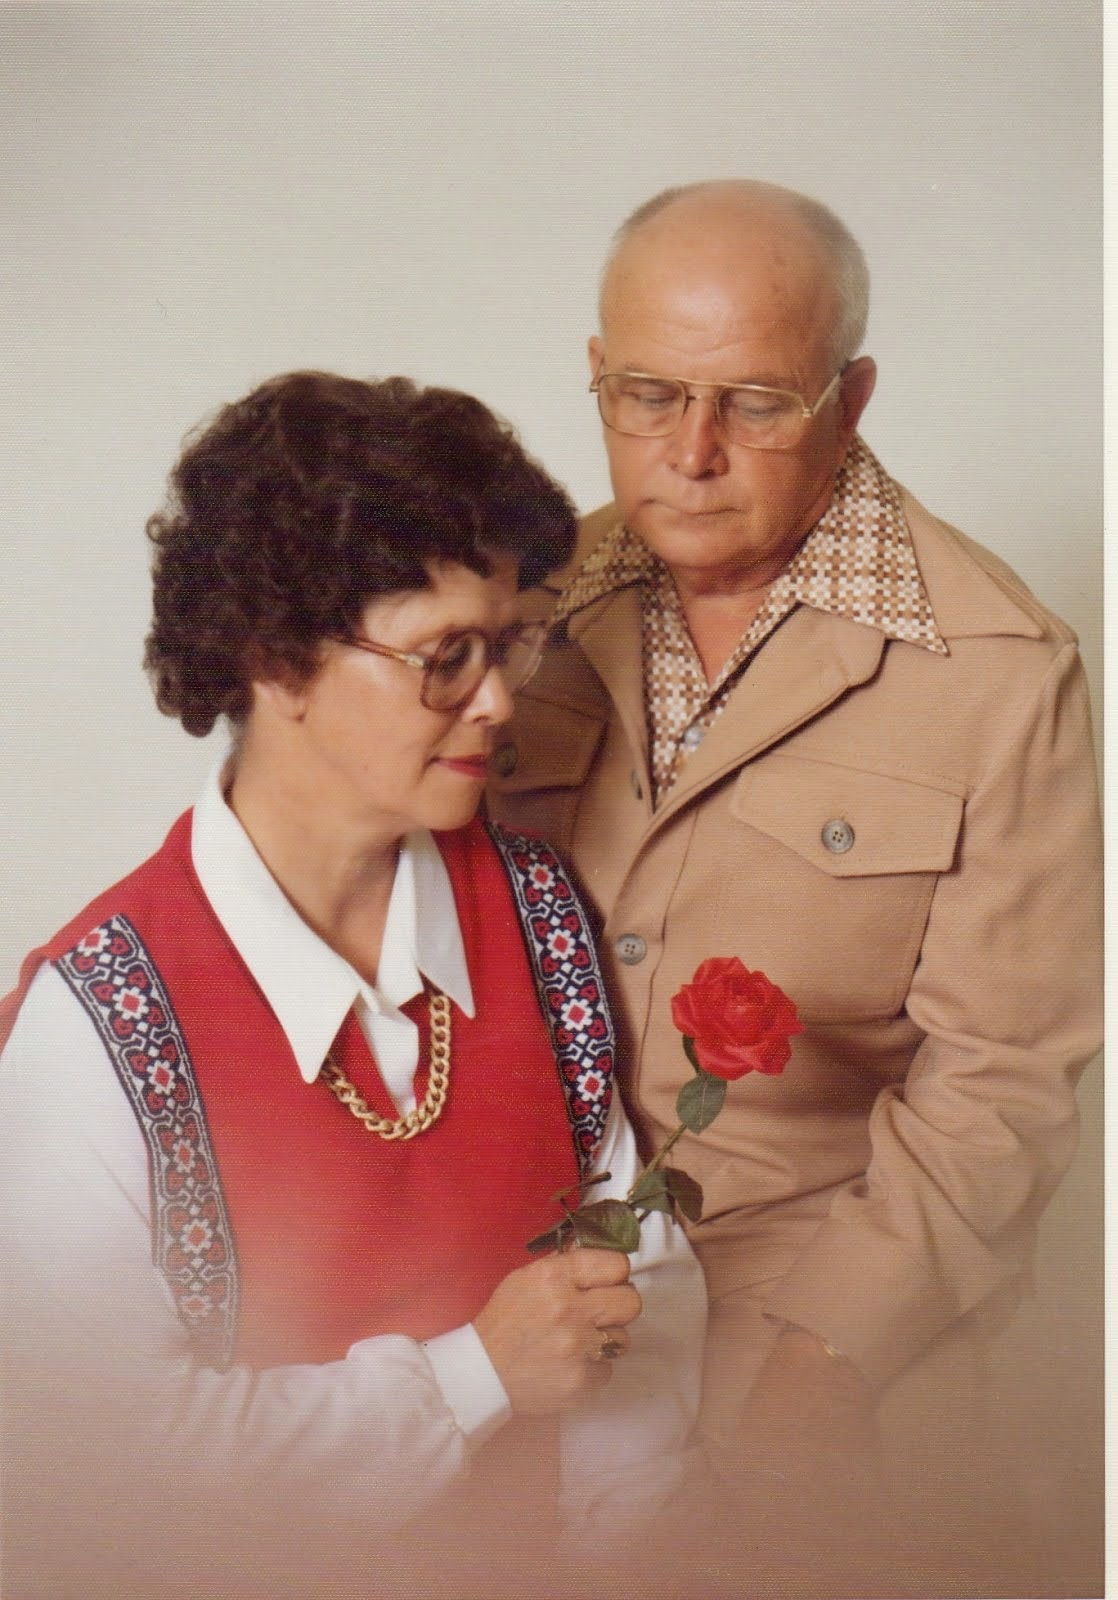 Virginia Spaulding (Grandma) with her husband (Grandpa) Alfred Spaulding